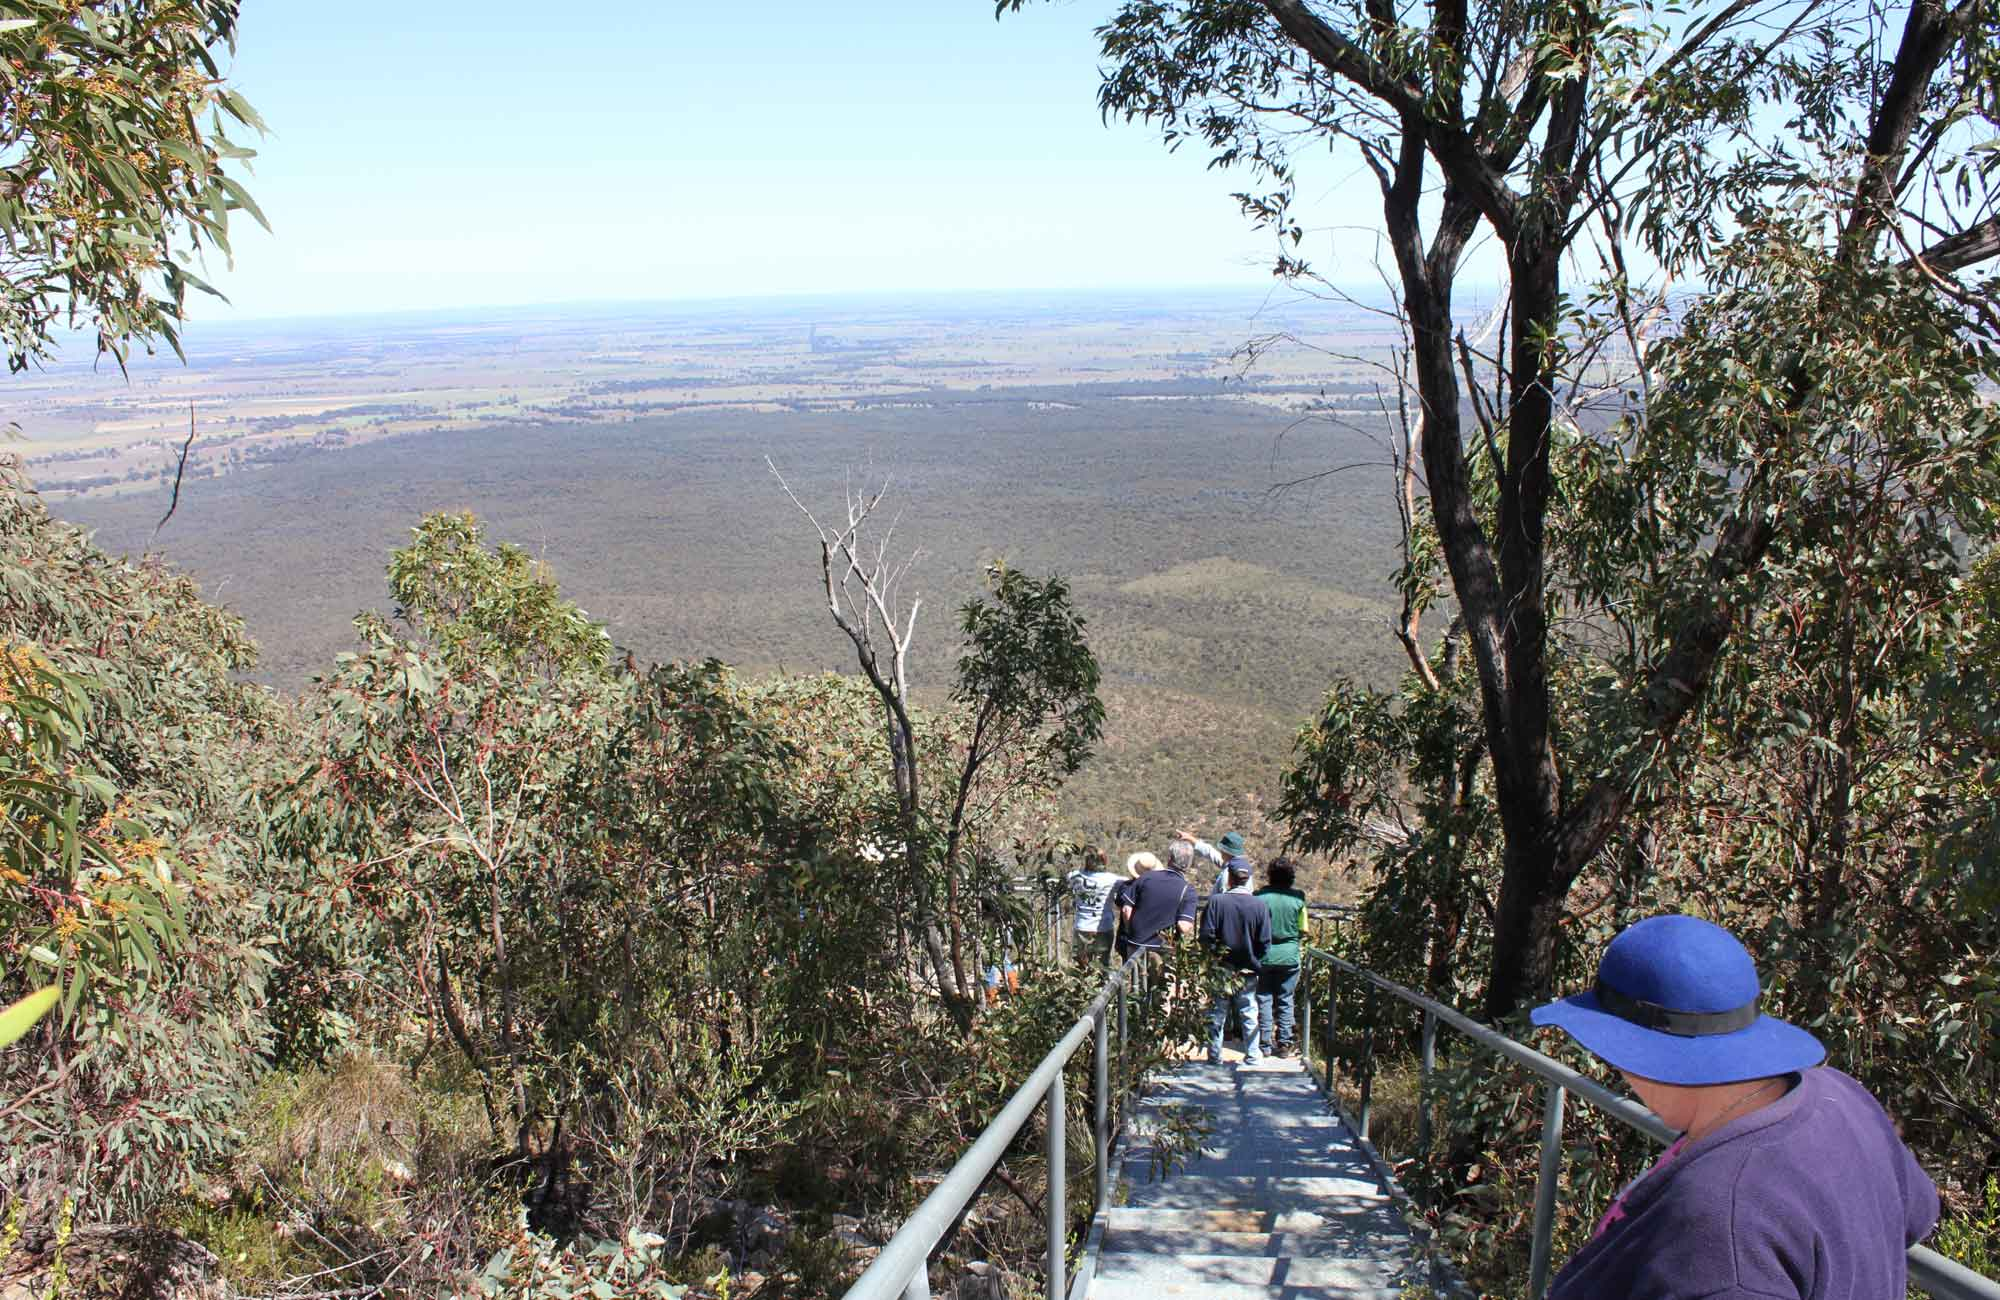 Caloma lookout hero, Goobang National Park. Photo: C Davis